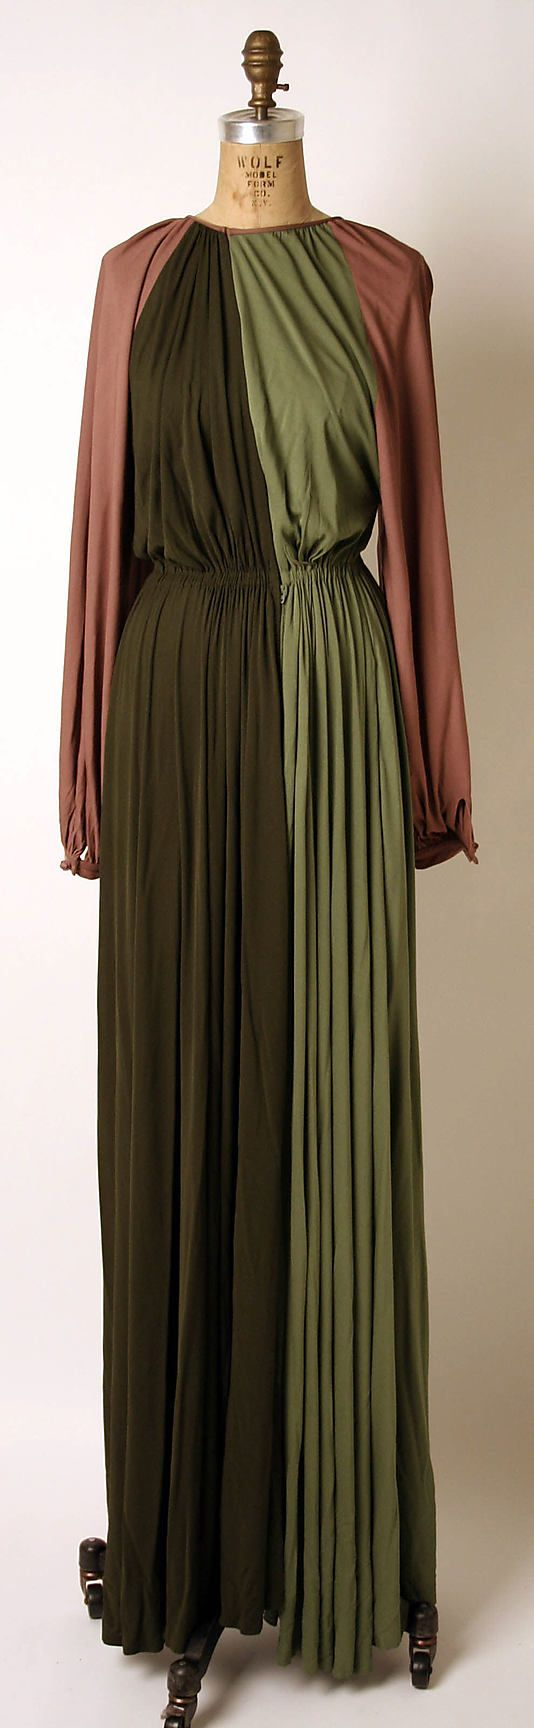 Dress by James Galanos, 1975.